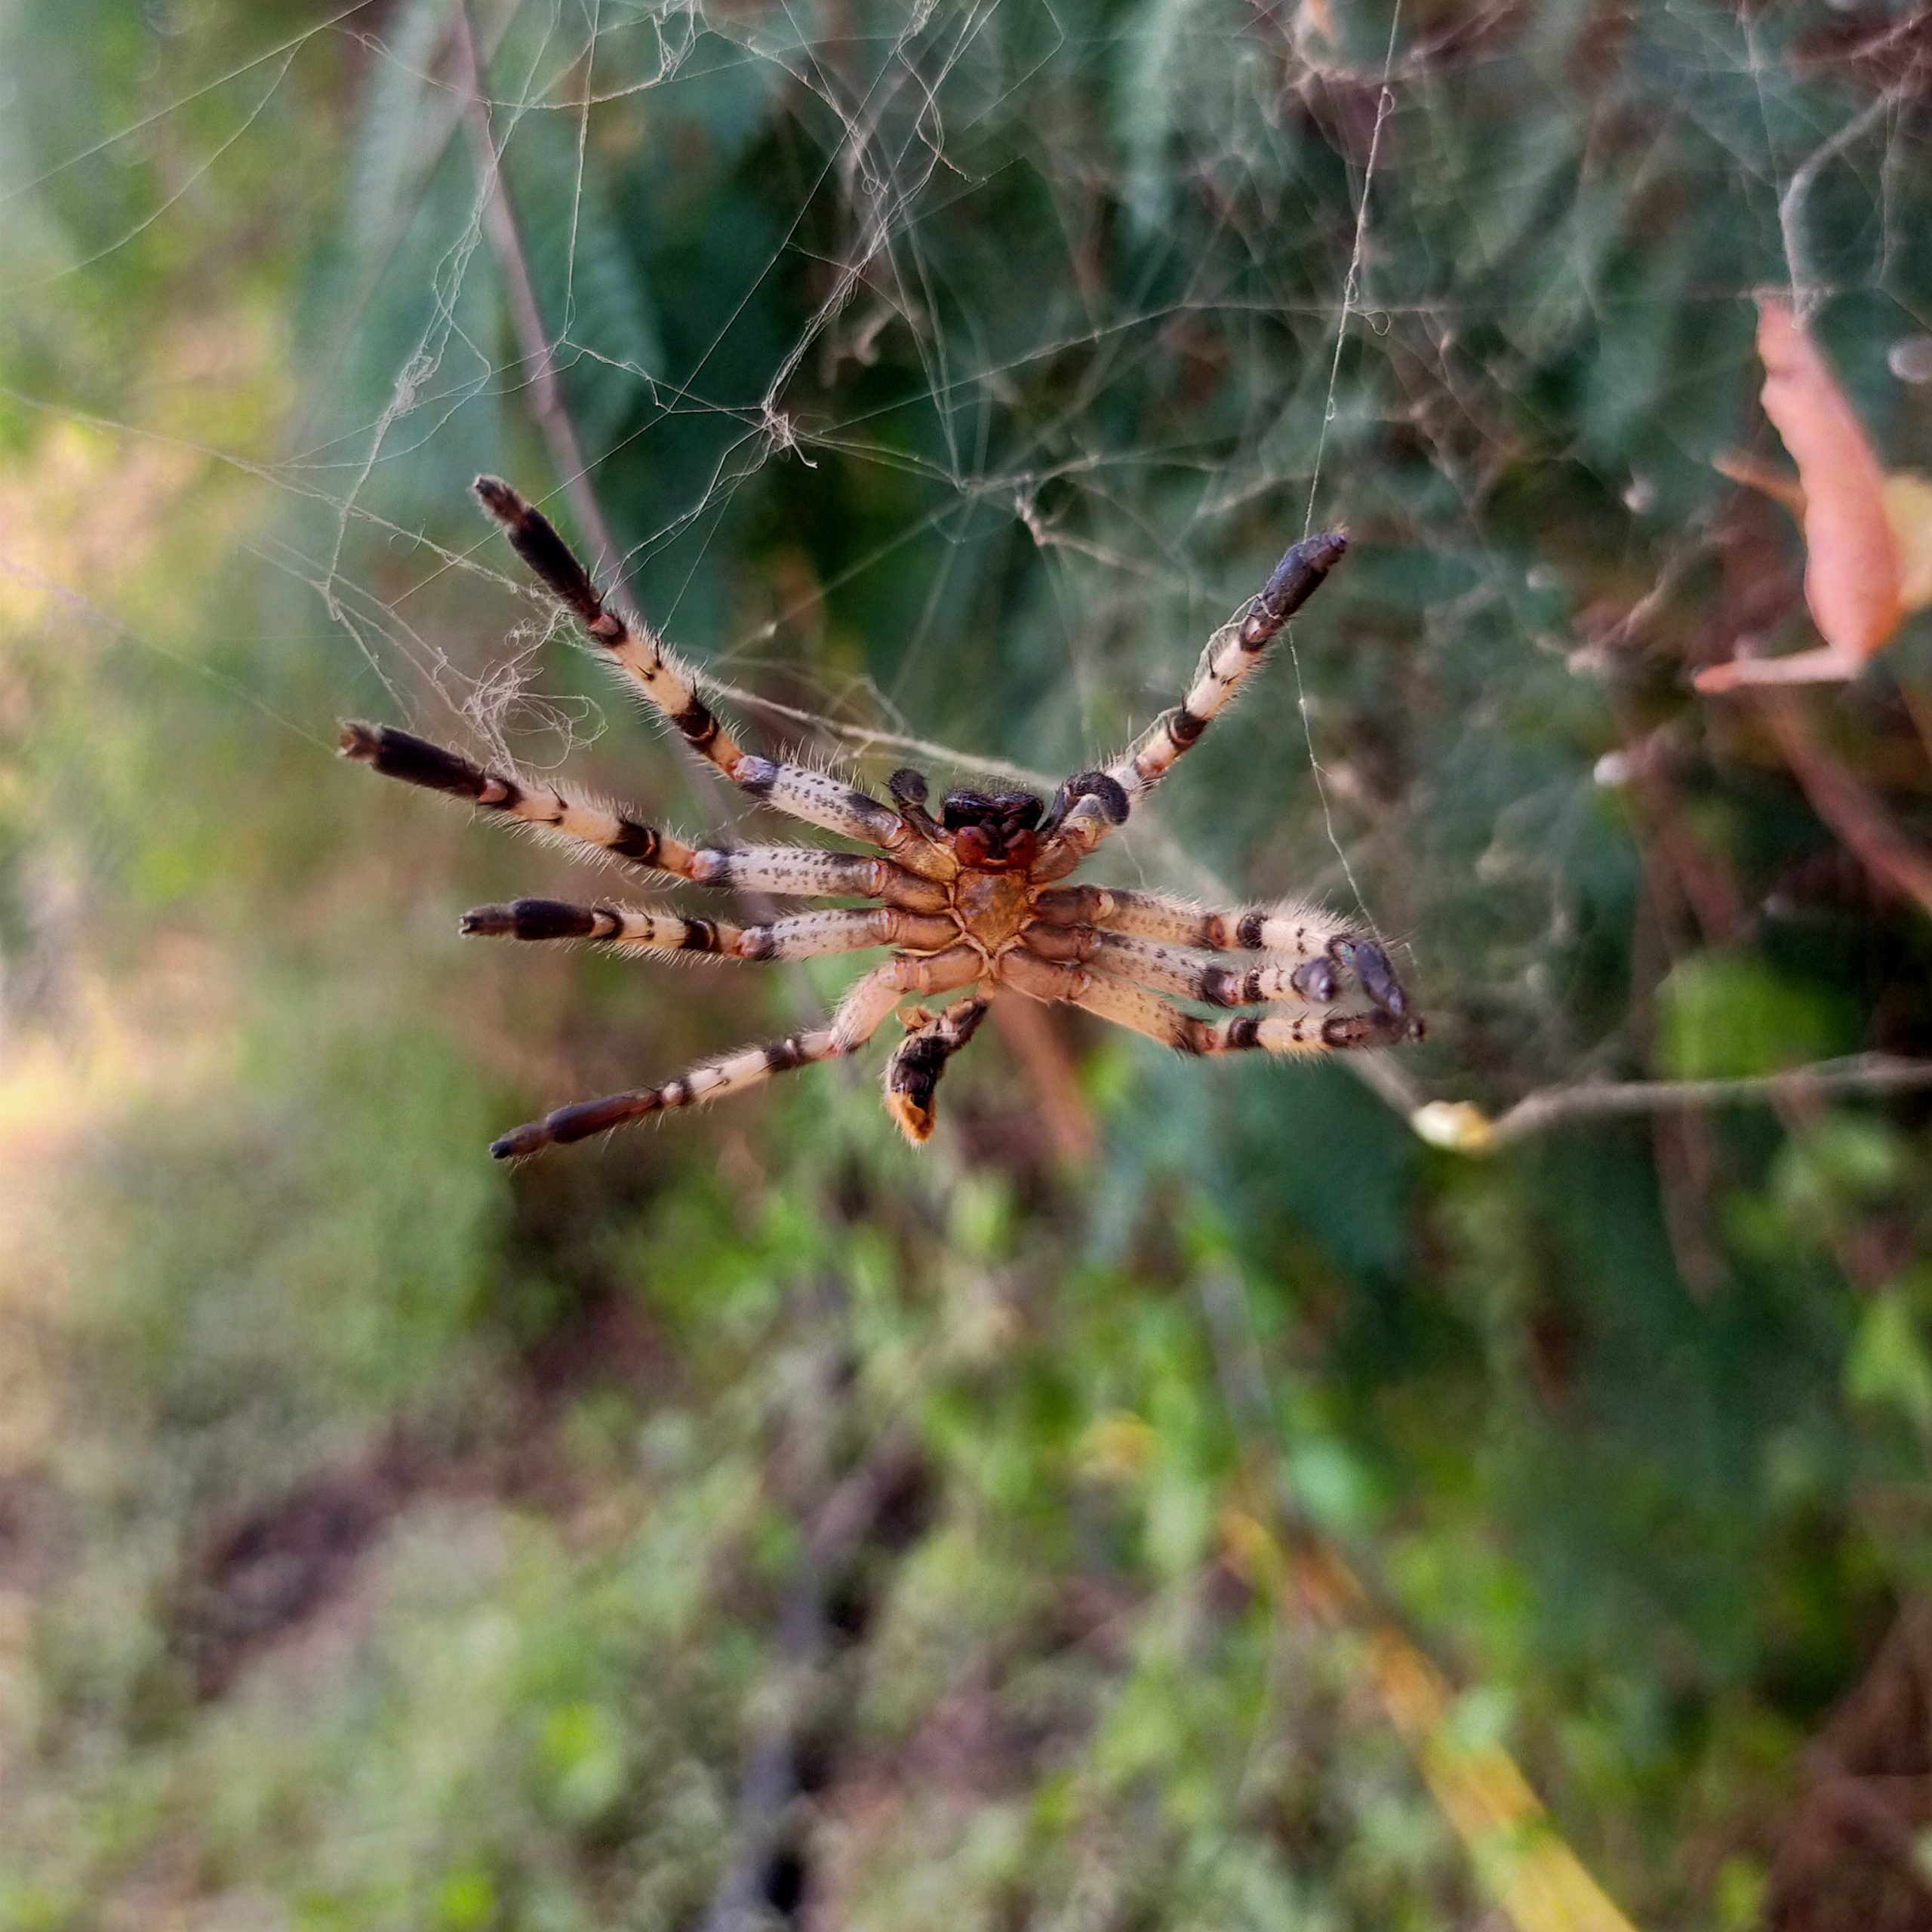 A spider on the web